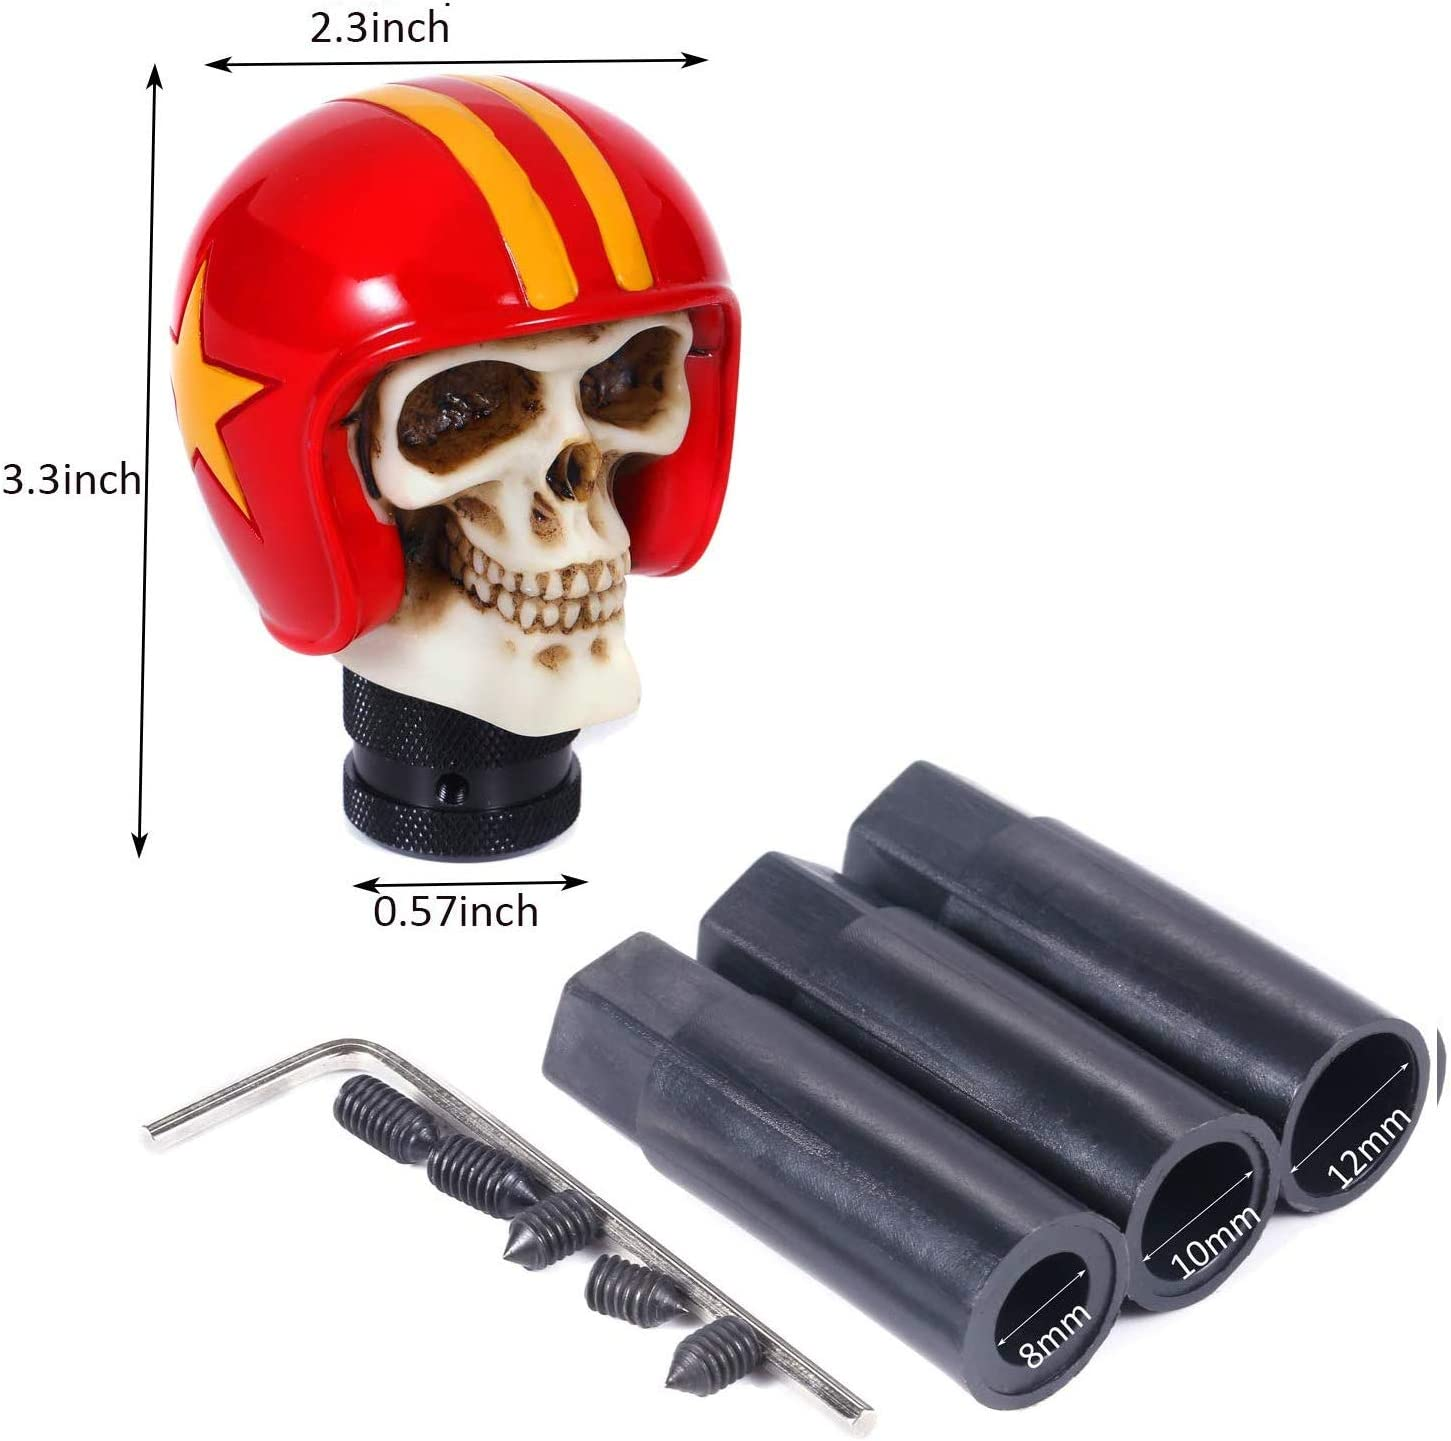 Bashineng Automatic Stick Shift Head Blue Skull Soldier Style Gear Shifter Knob Fit for Most Universal Manual Cars